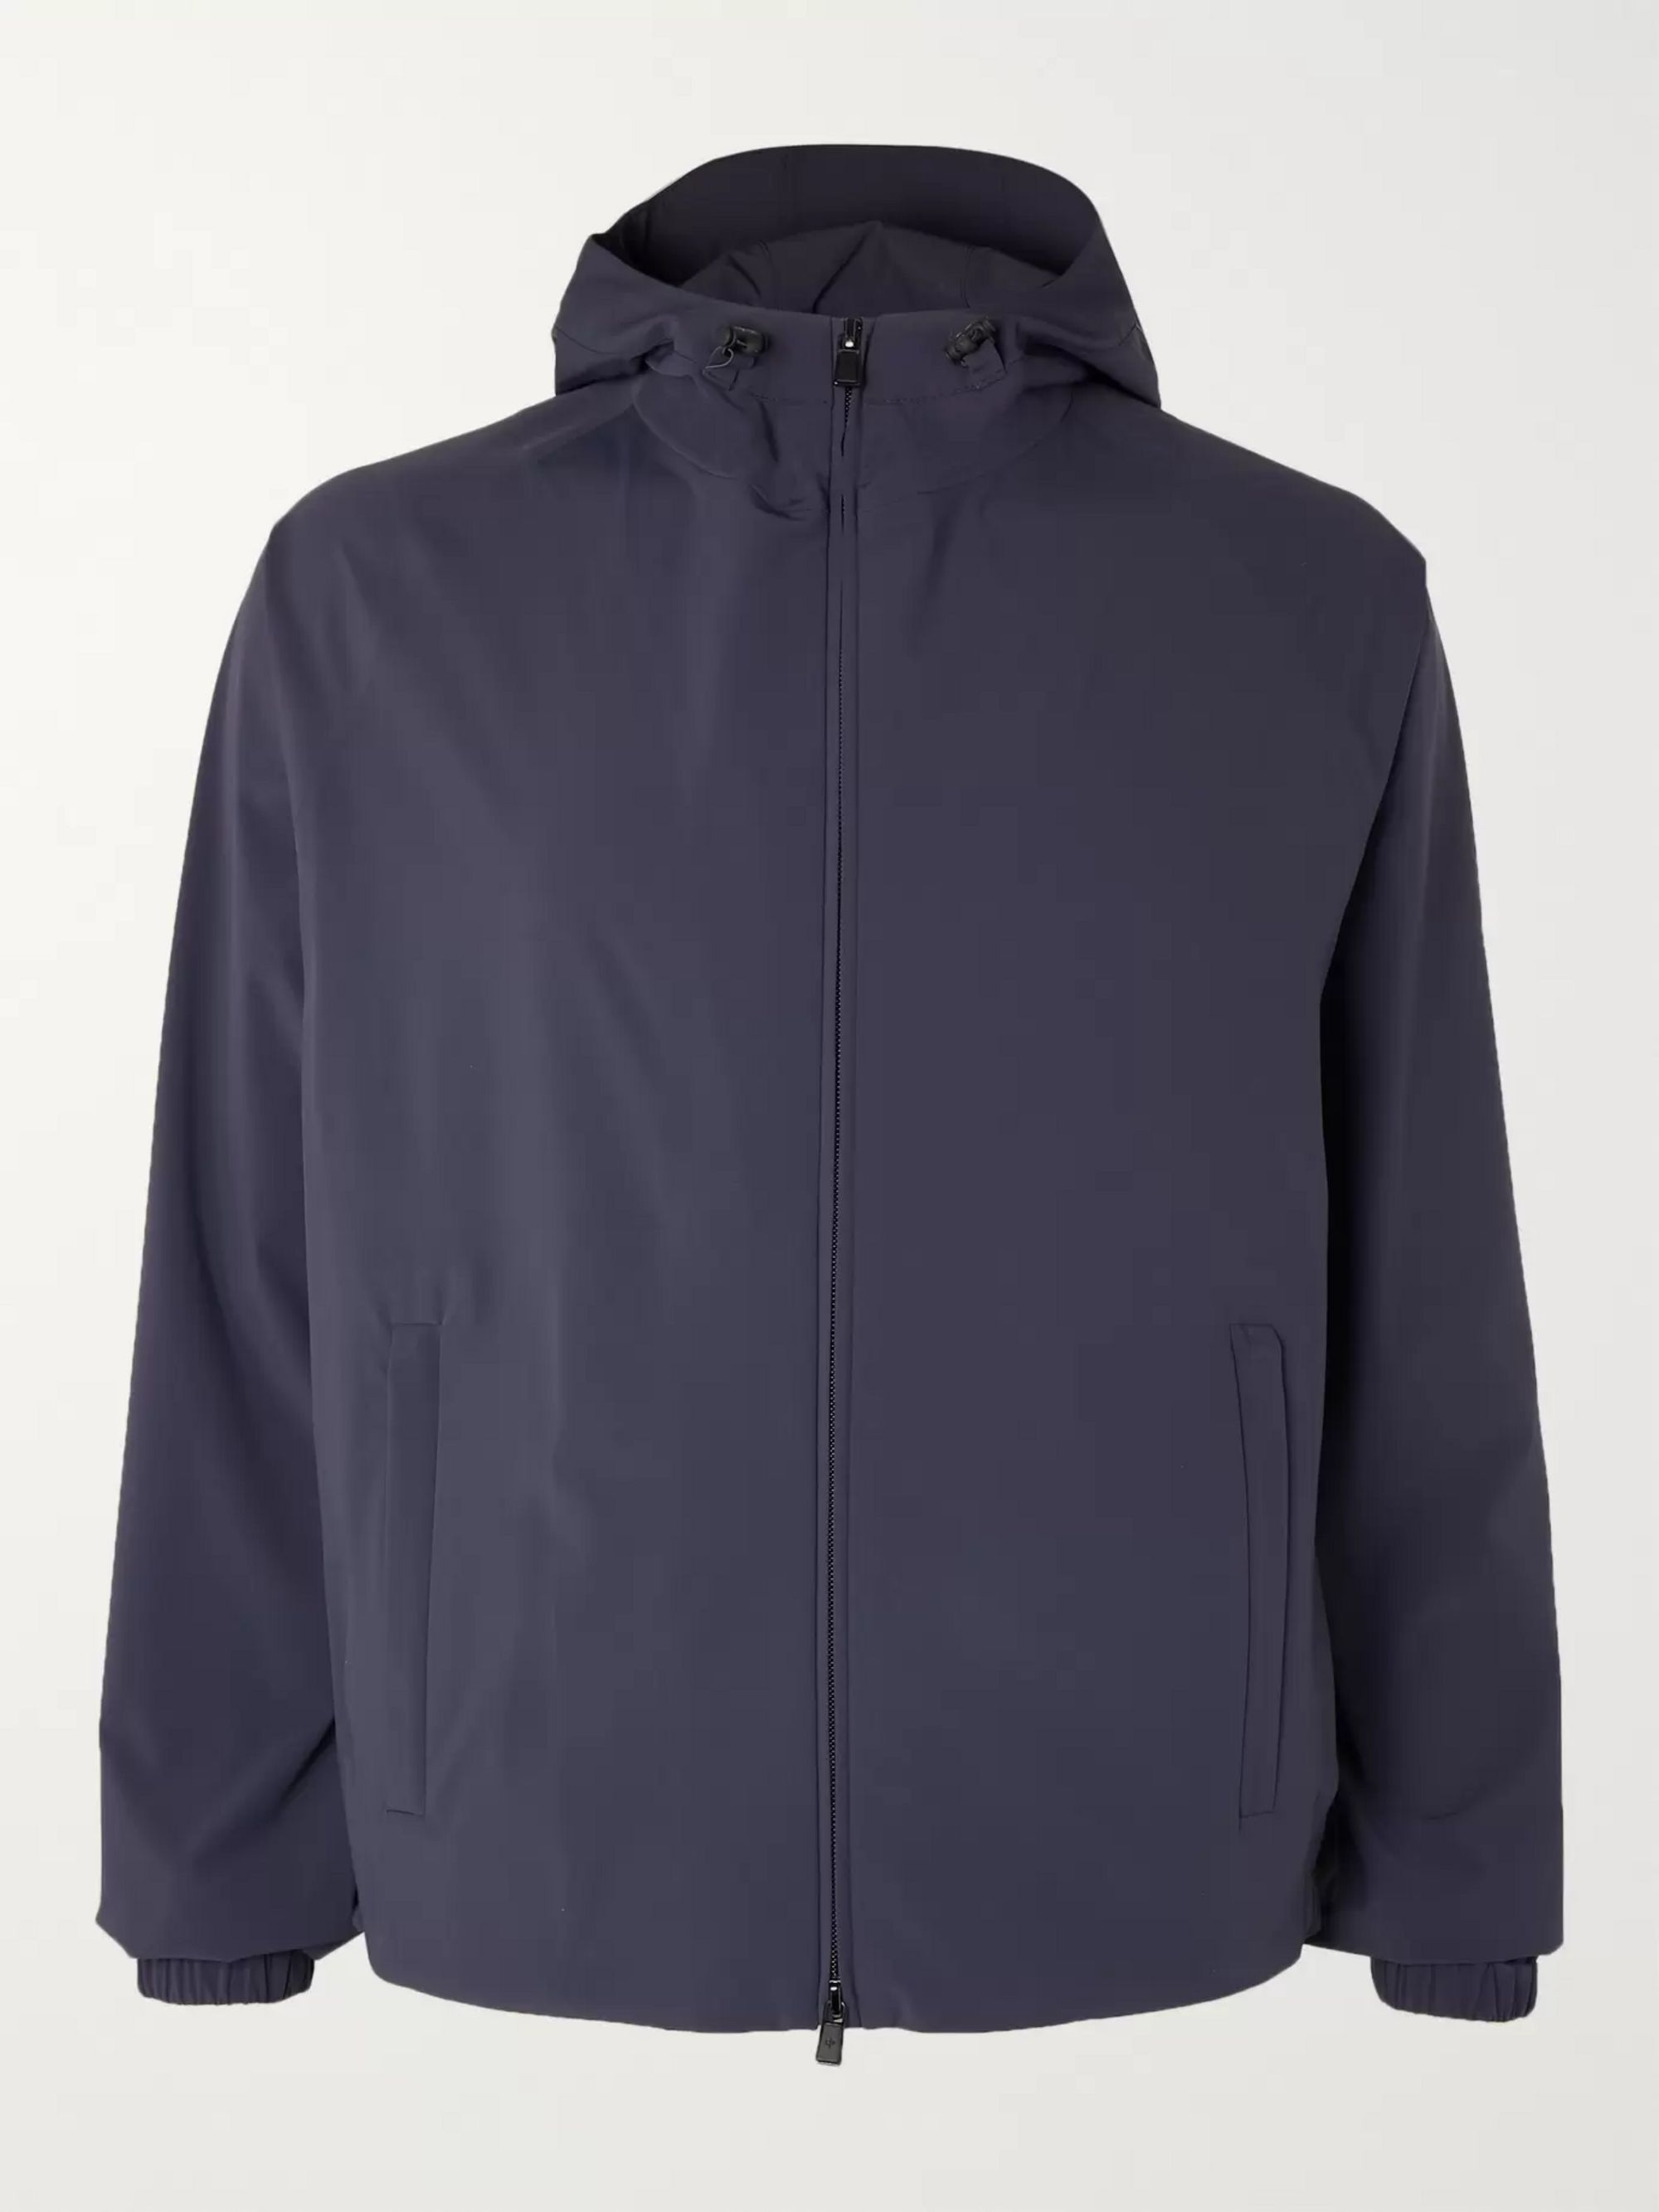 Loro Piana MatchPlay Storm System Shell Hooded Golf Jacket